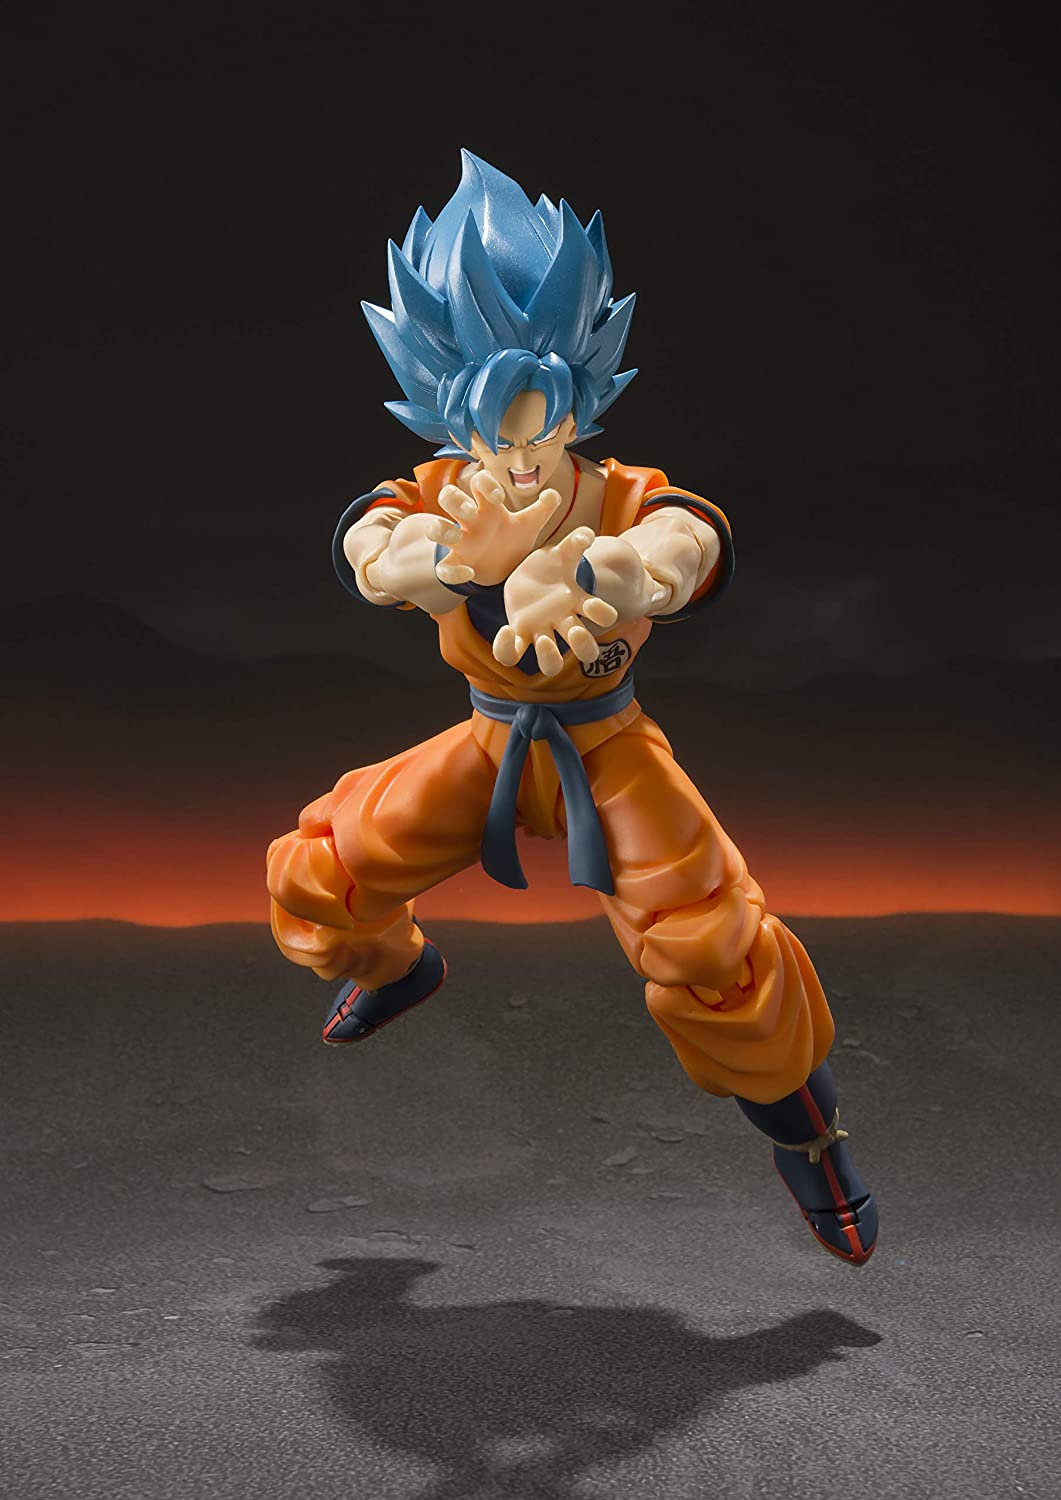 TAMASHII NATIONS Bandai S.H. Figuarts Super Saiyan God Super Saiyan Goku Dragon Ball Super: Broly Action Figure